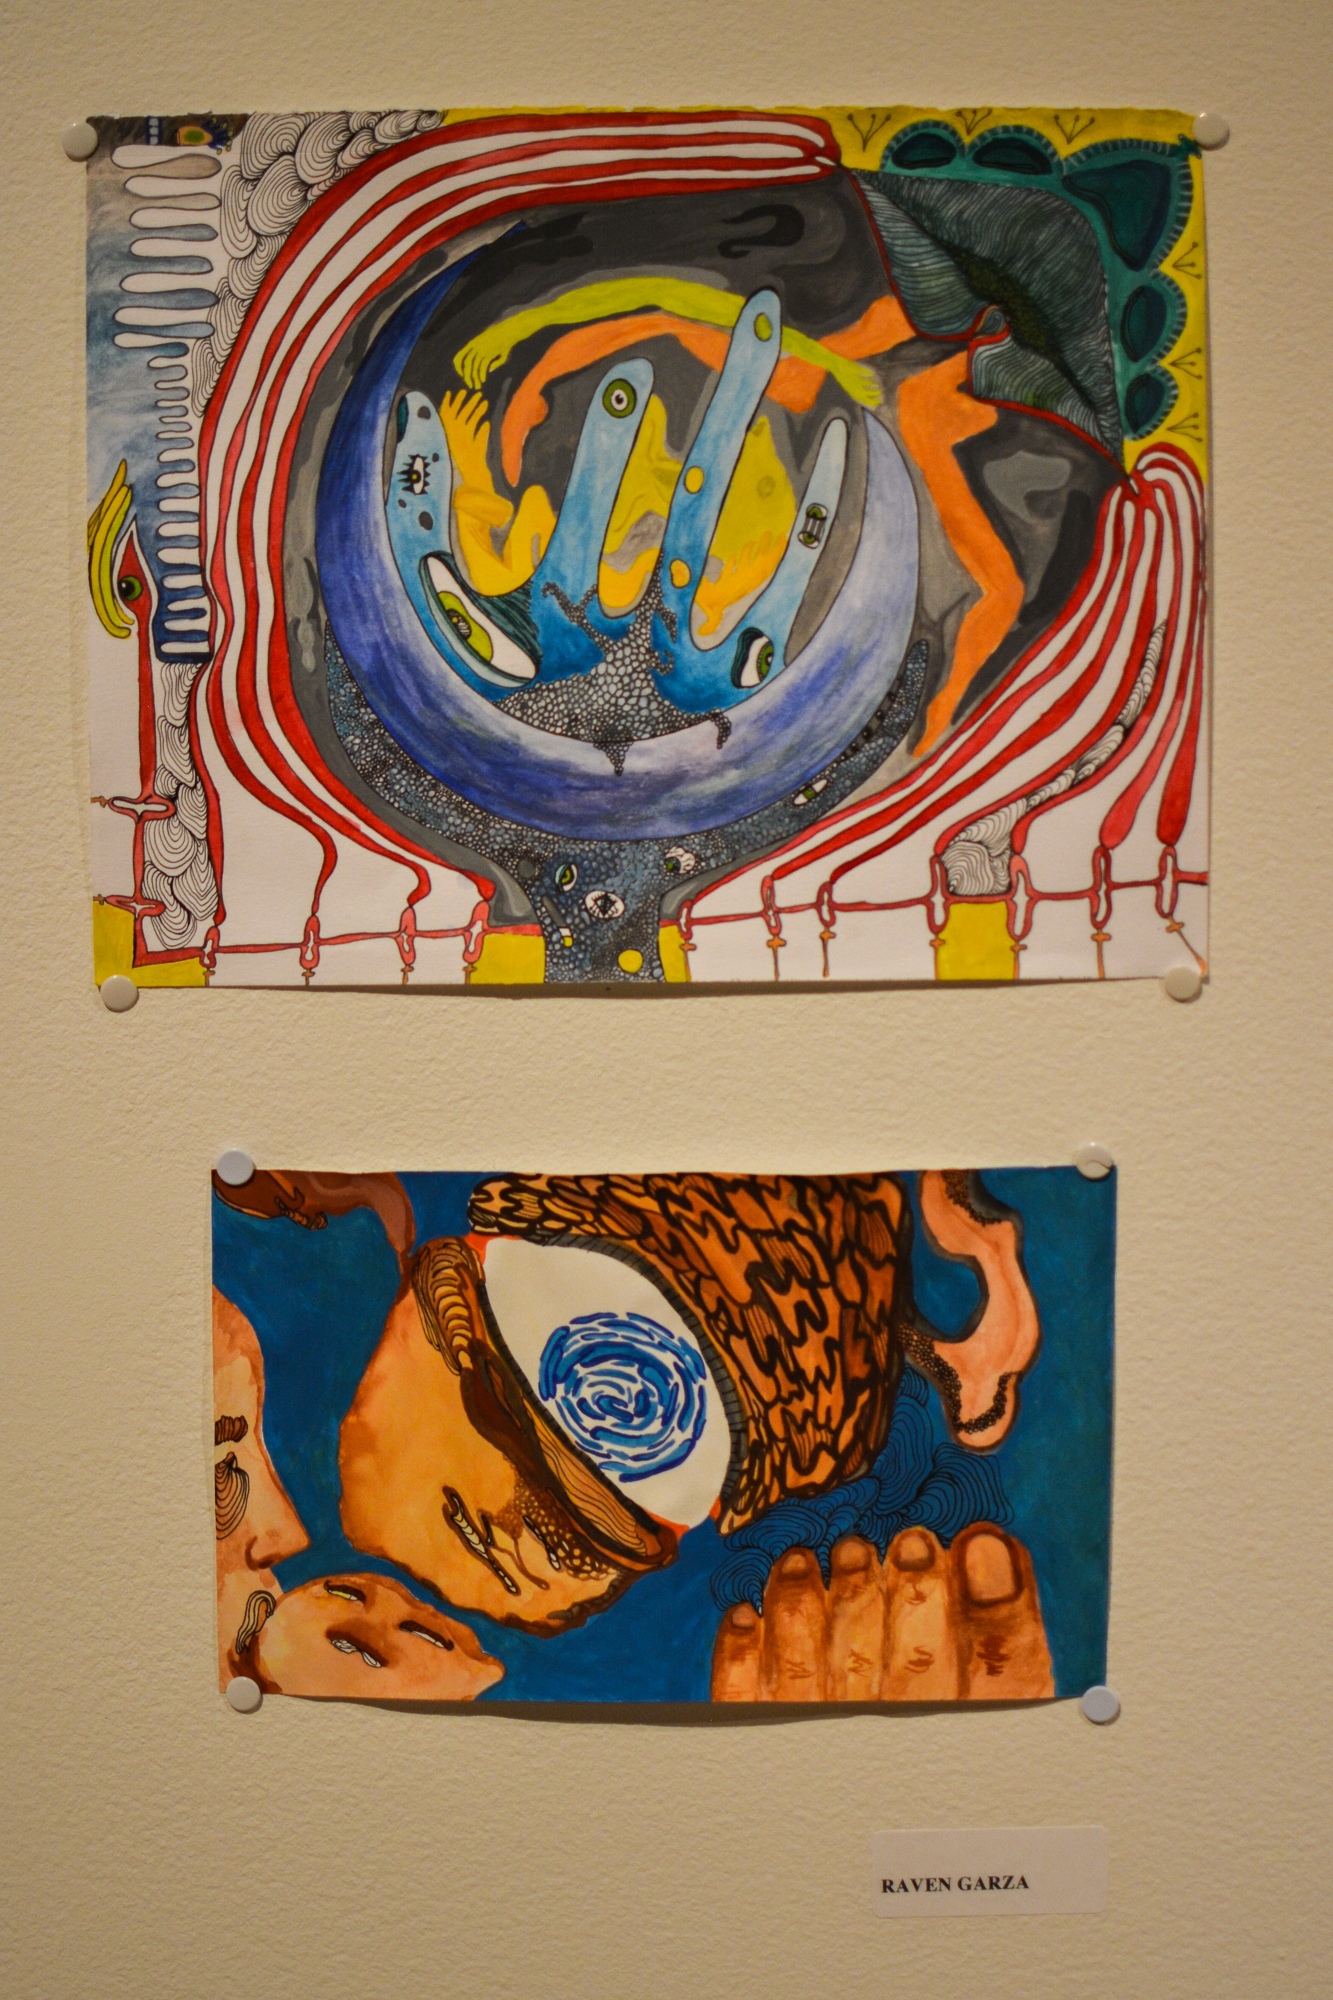 Two art pieces made by by Raven Garza.